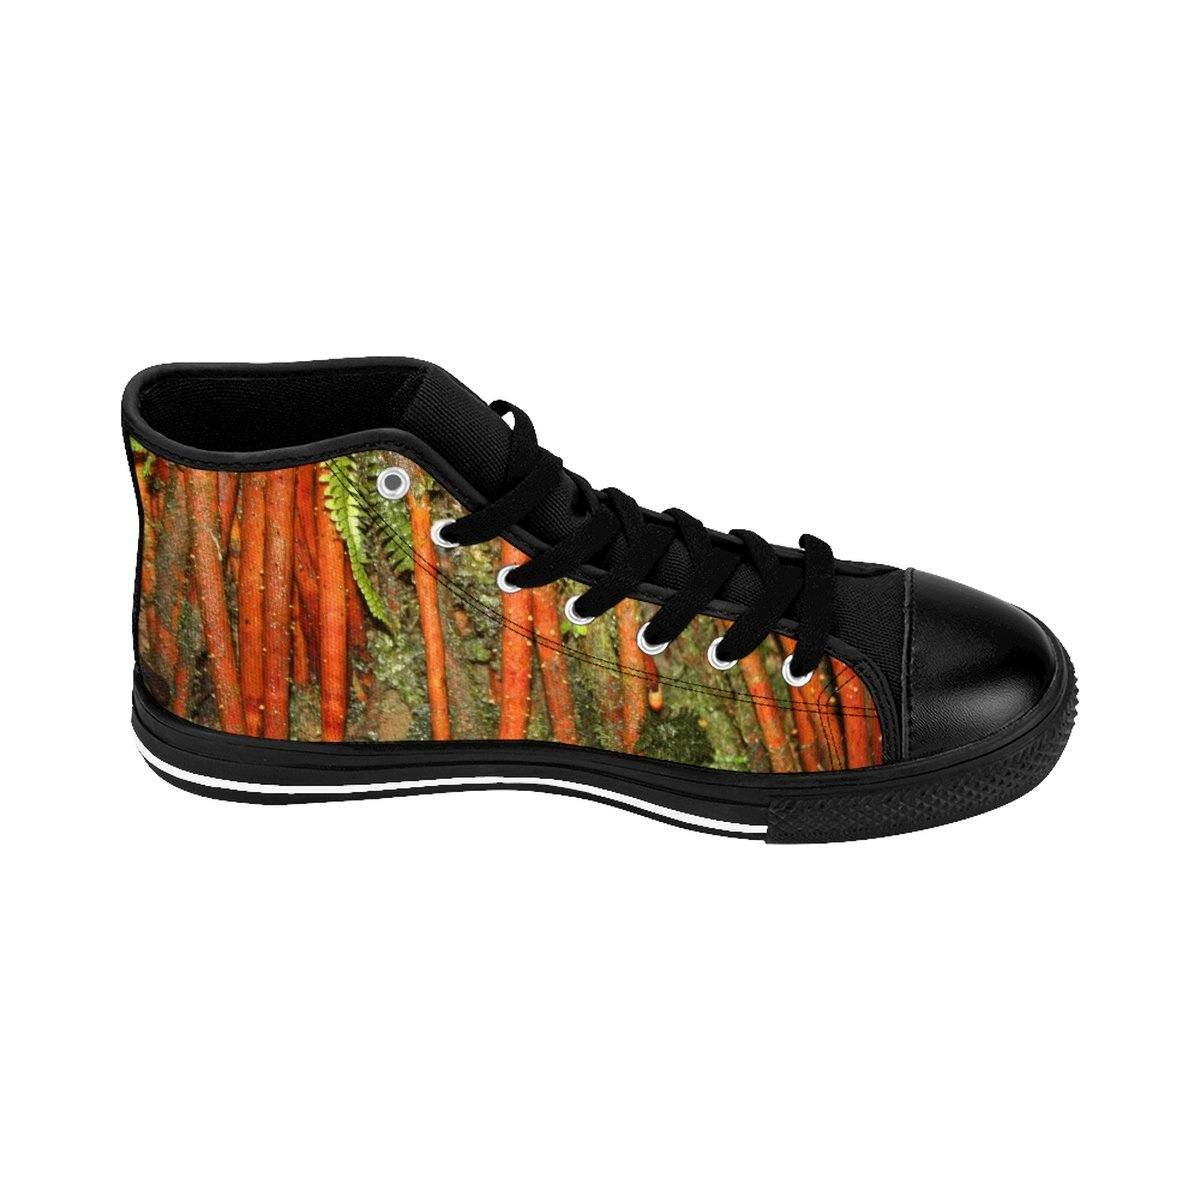 Women's High-top Sneakers - Roots of the Sierra Palm - cloud forest - El Yunque rain forest PR Shoes Printify